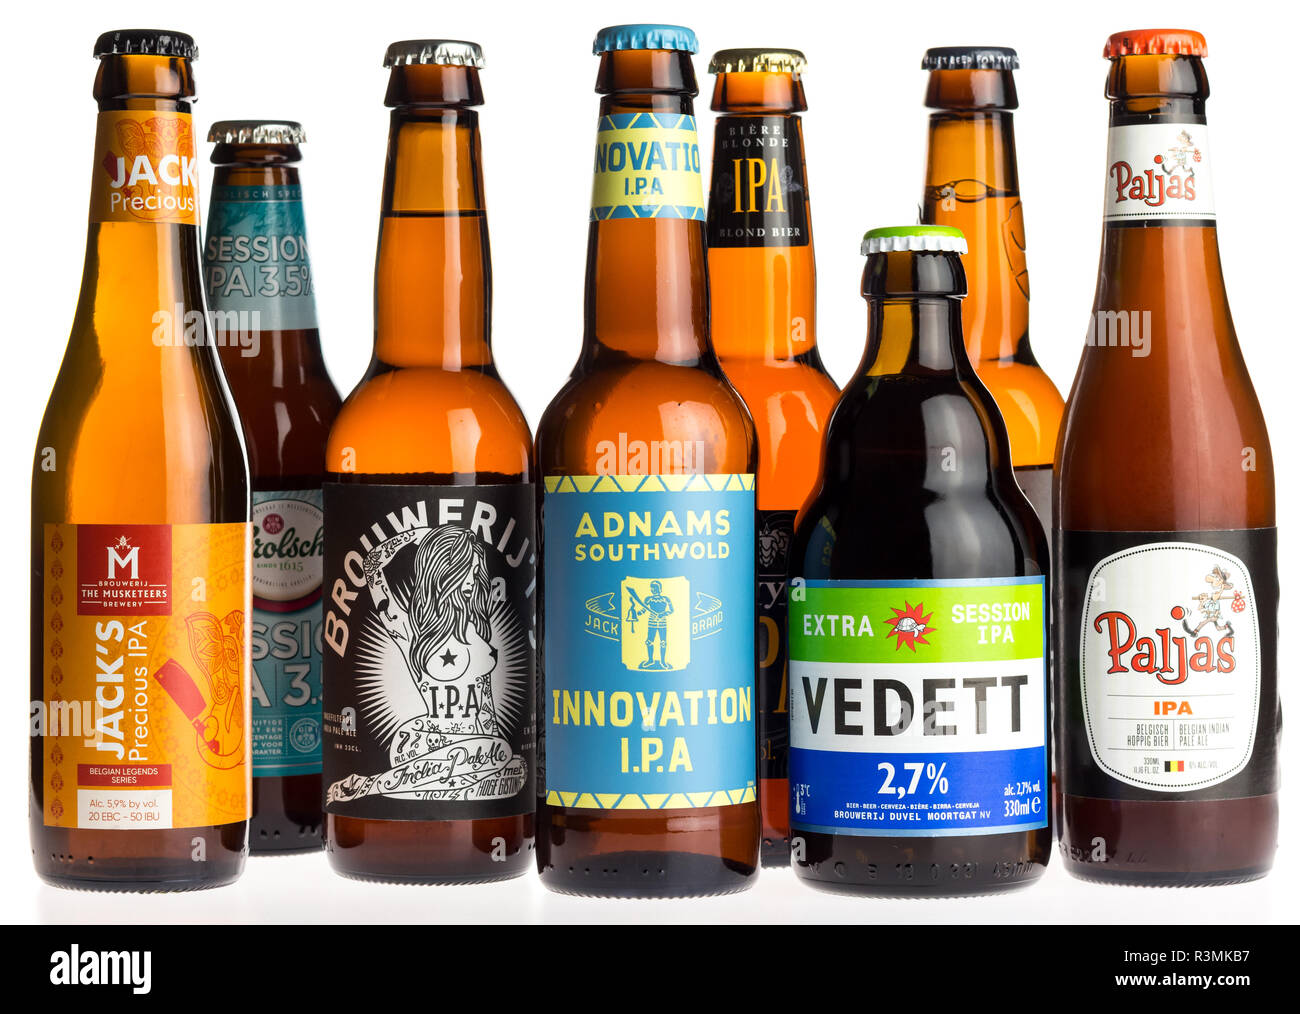 Collection of Jacks, Adnams, Vedett and Paljas Indian Pale Ale beers isolated on a white background - Stock Image